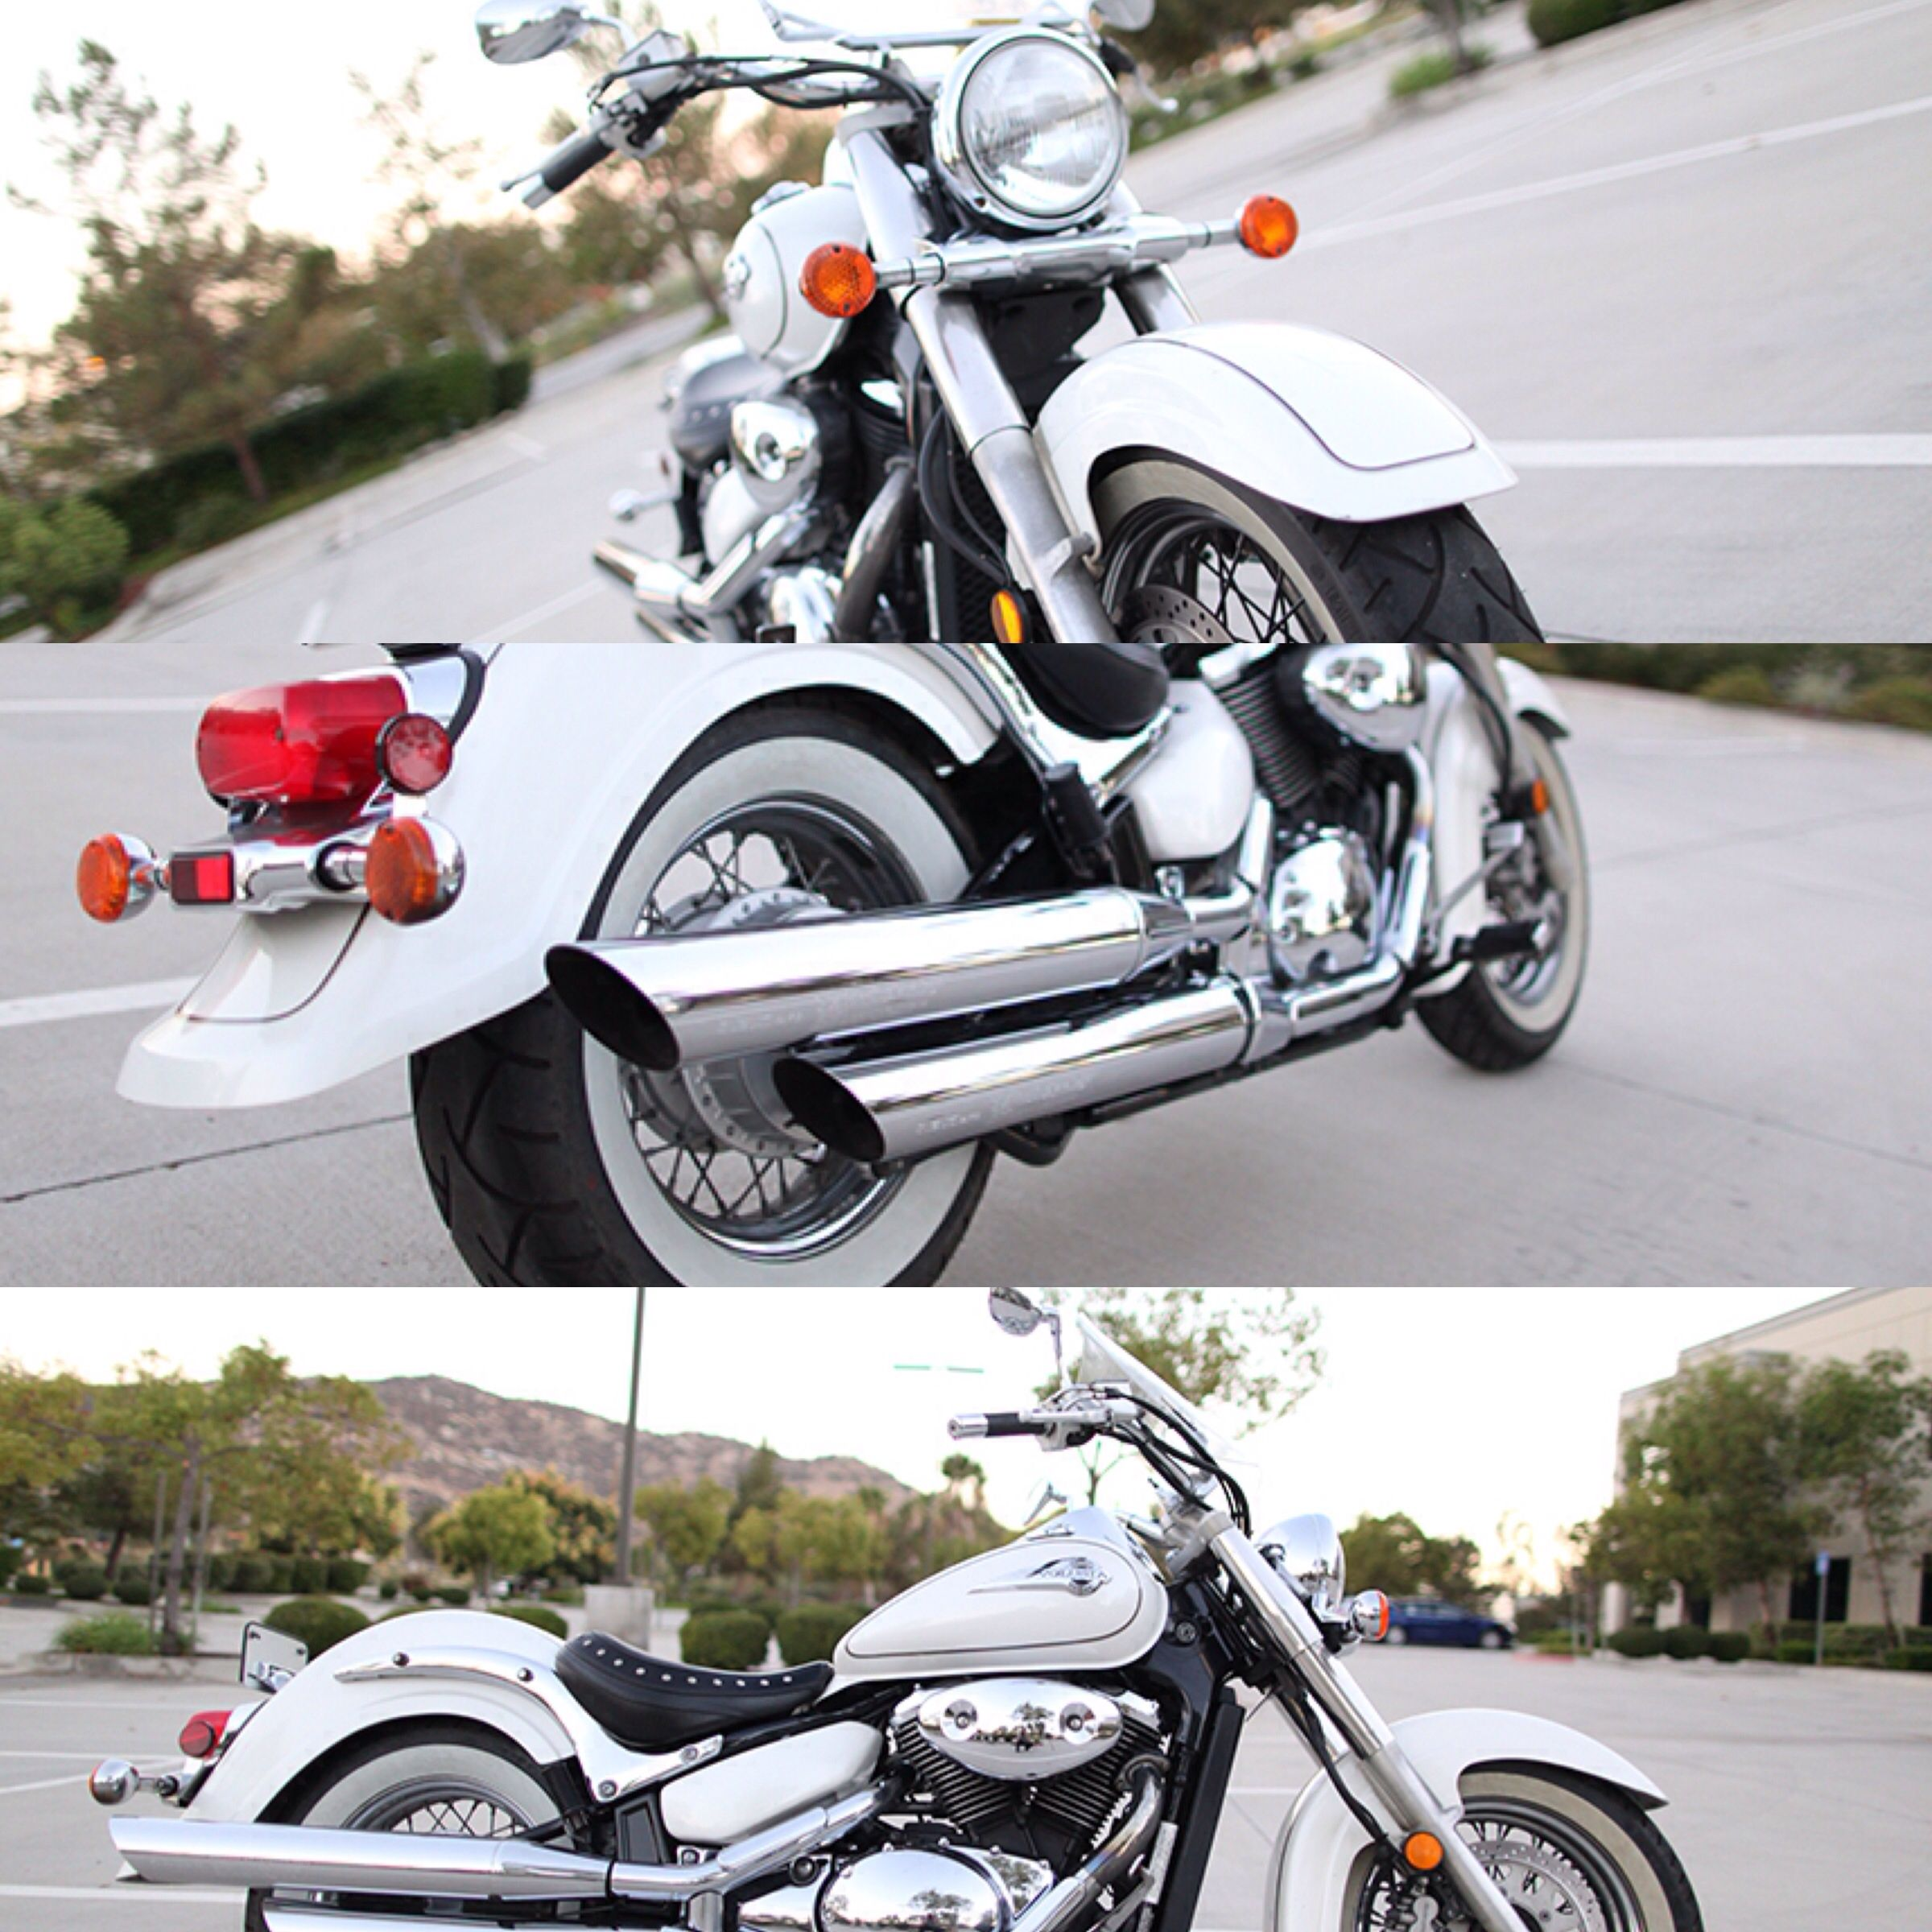 Wiring Diagram Suzuki Volusia Forums Intruder And Free Download Vl800 Schematic 2003 40th Anniversary Limited Edition As Well Gs